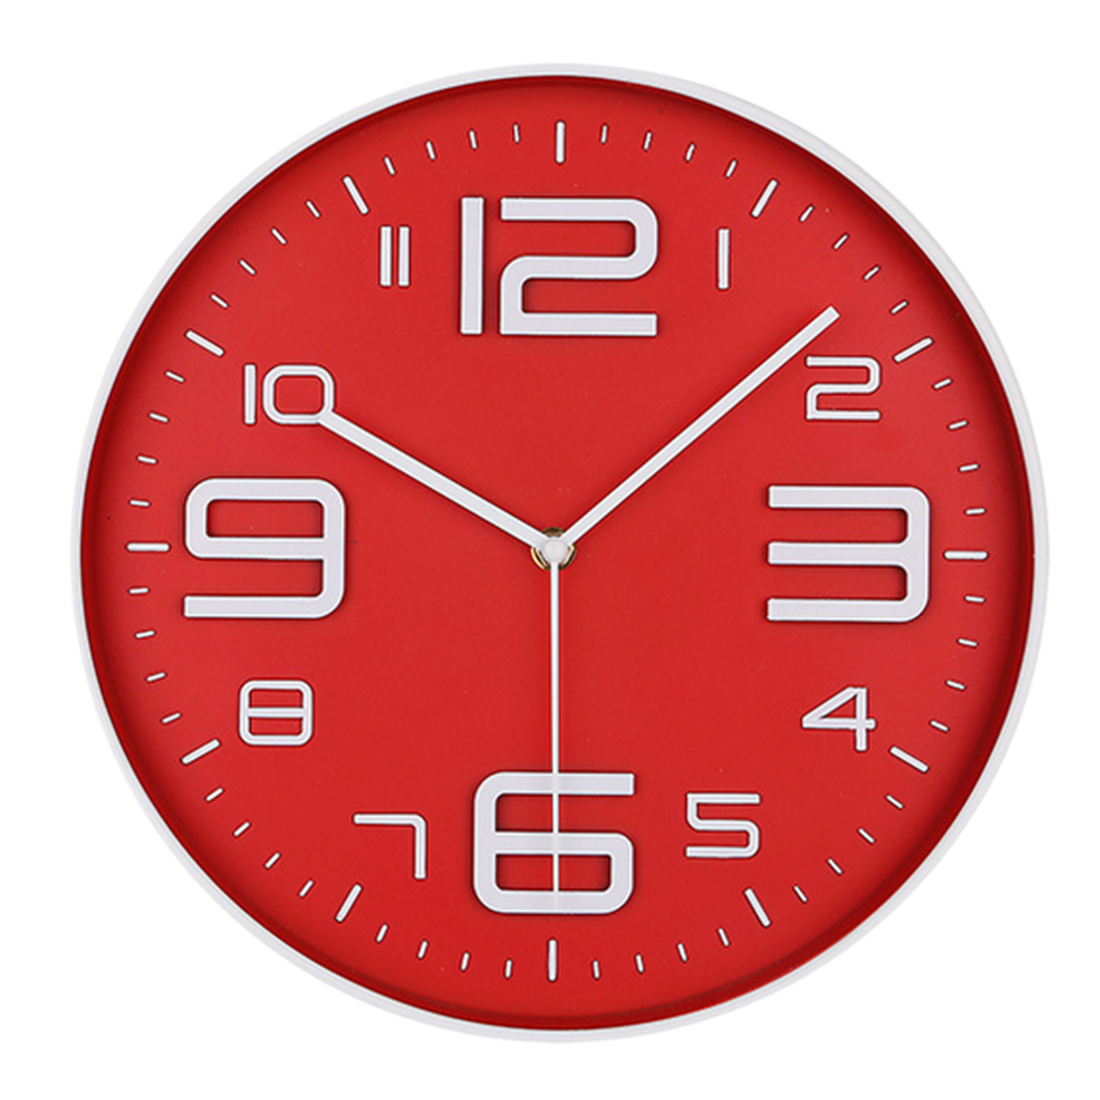 Simple Design Wall Clock Home Bedroom Cafe Decor Clock Red + White by